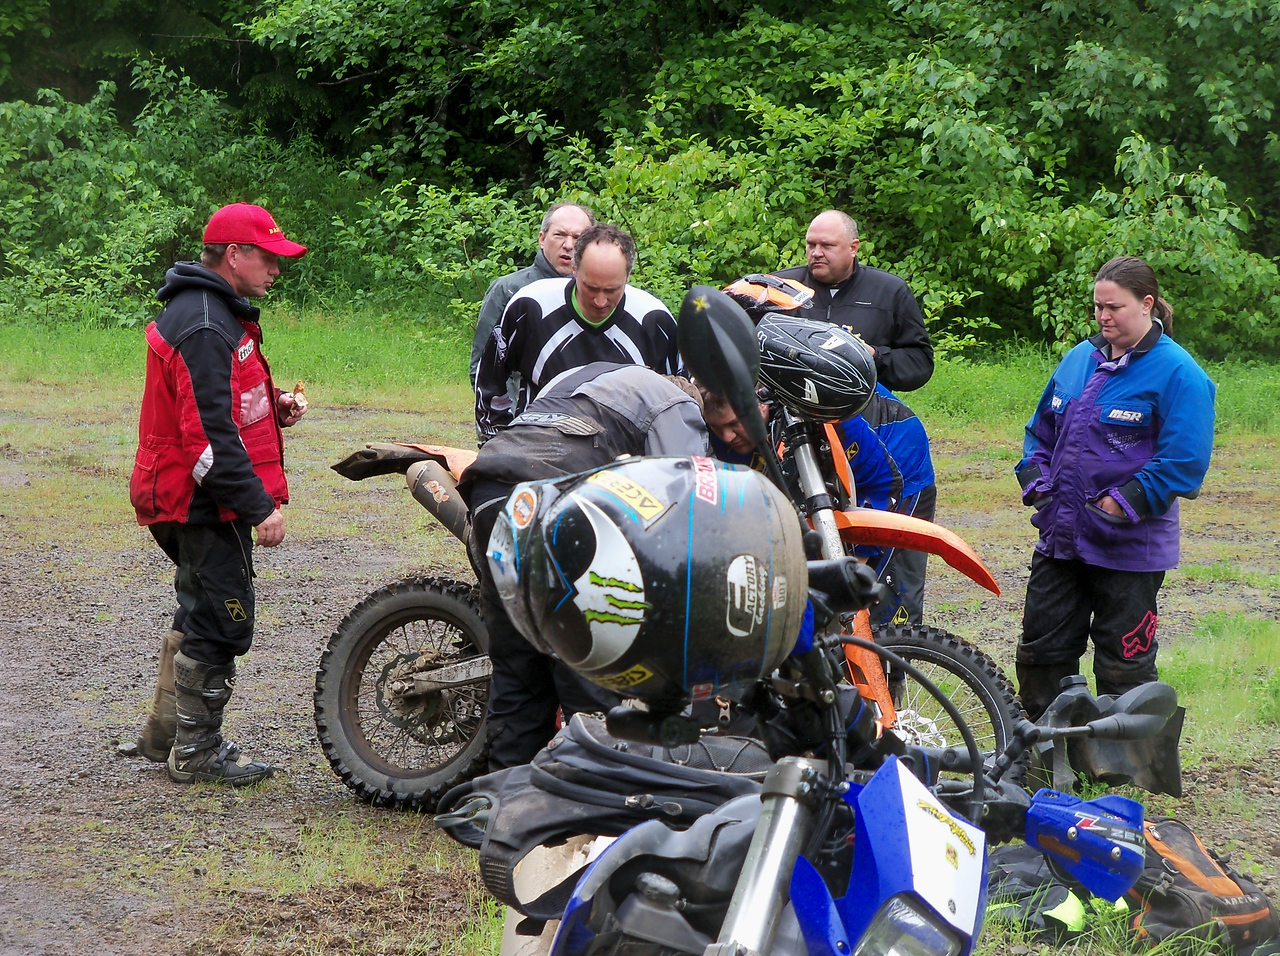 We had a few bike issues, Justin's lights and my ATK died, but made it back to Matlock...